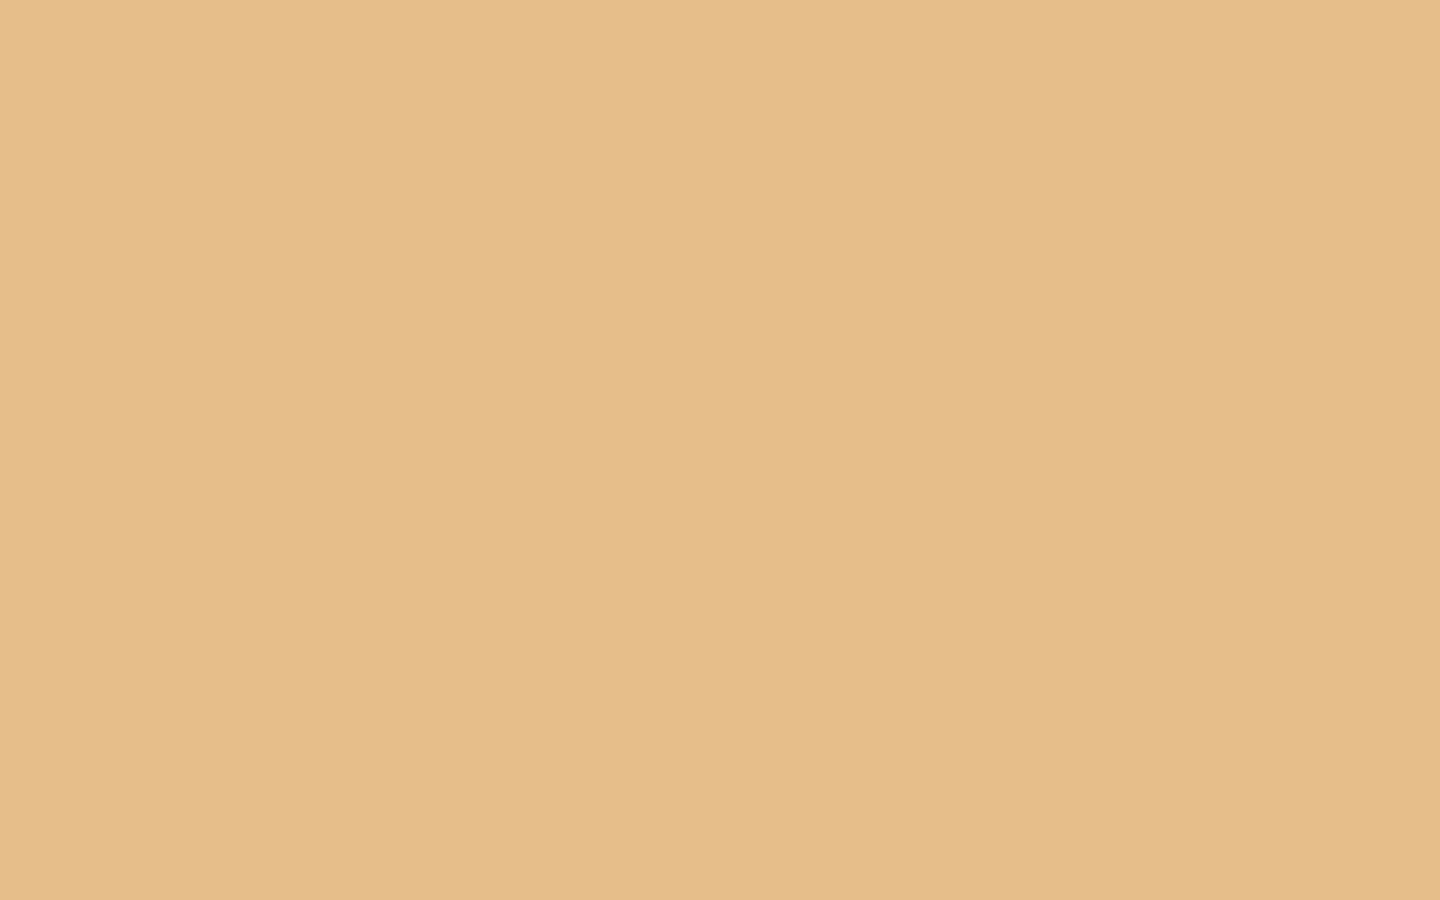 1440x900 Pale Gold Solid Color Background